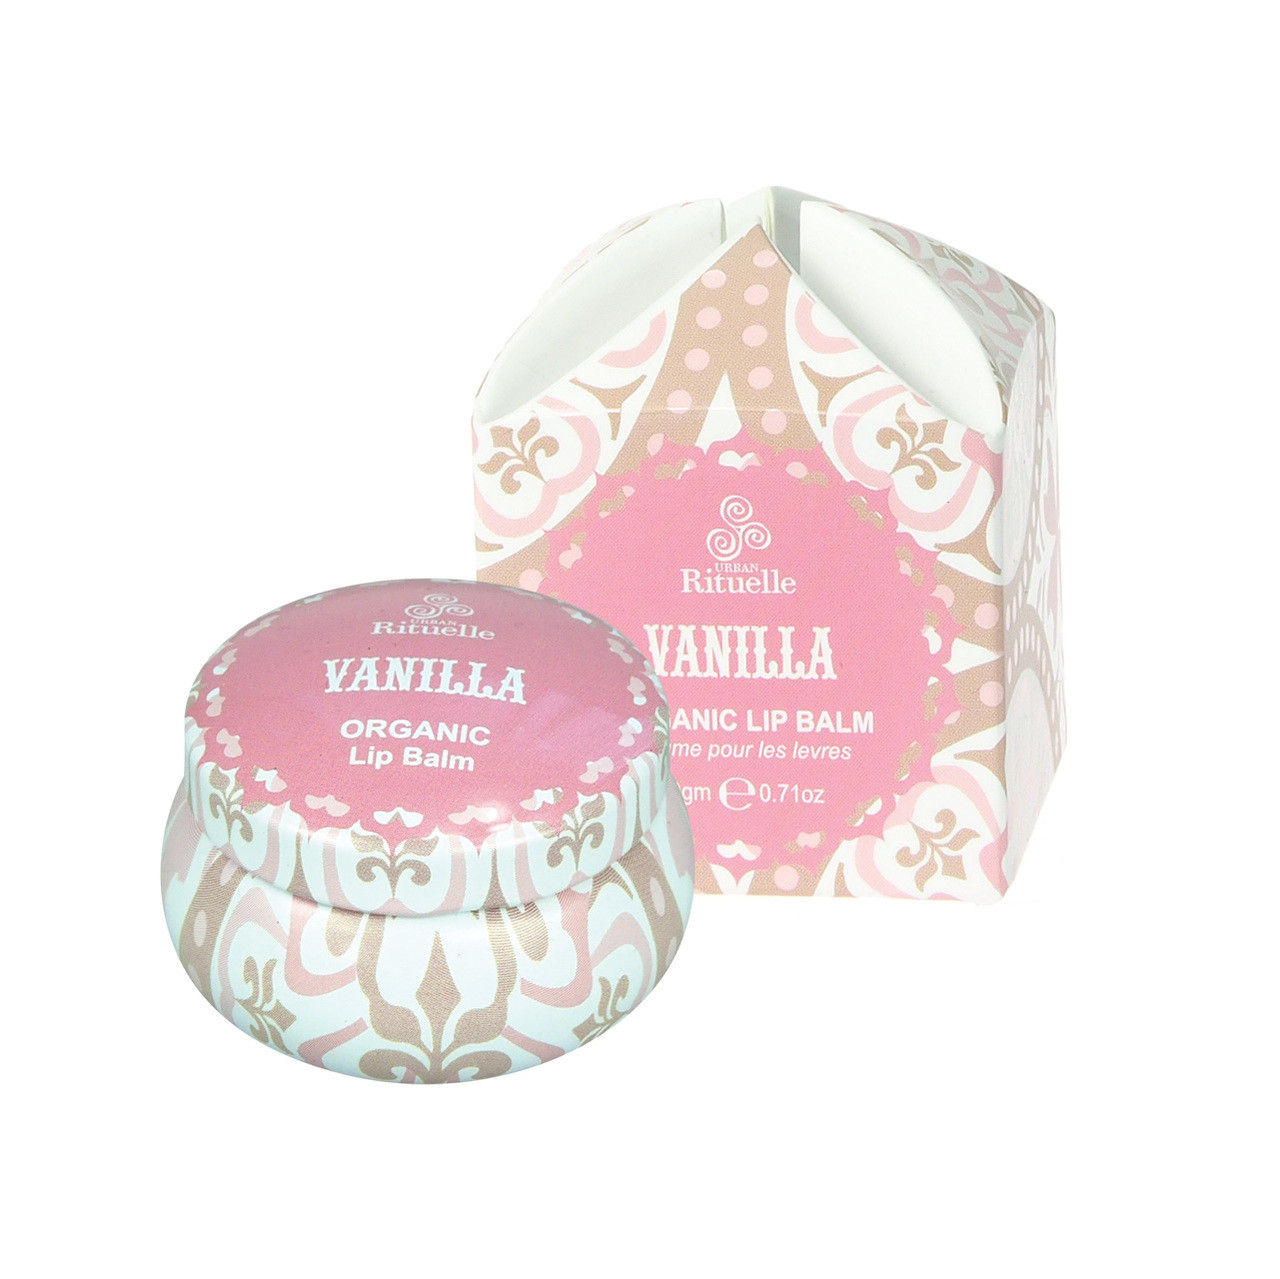 Vanilla Organic Lip Balm - Sweet Treats - Urban Rituelle